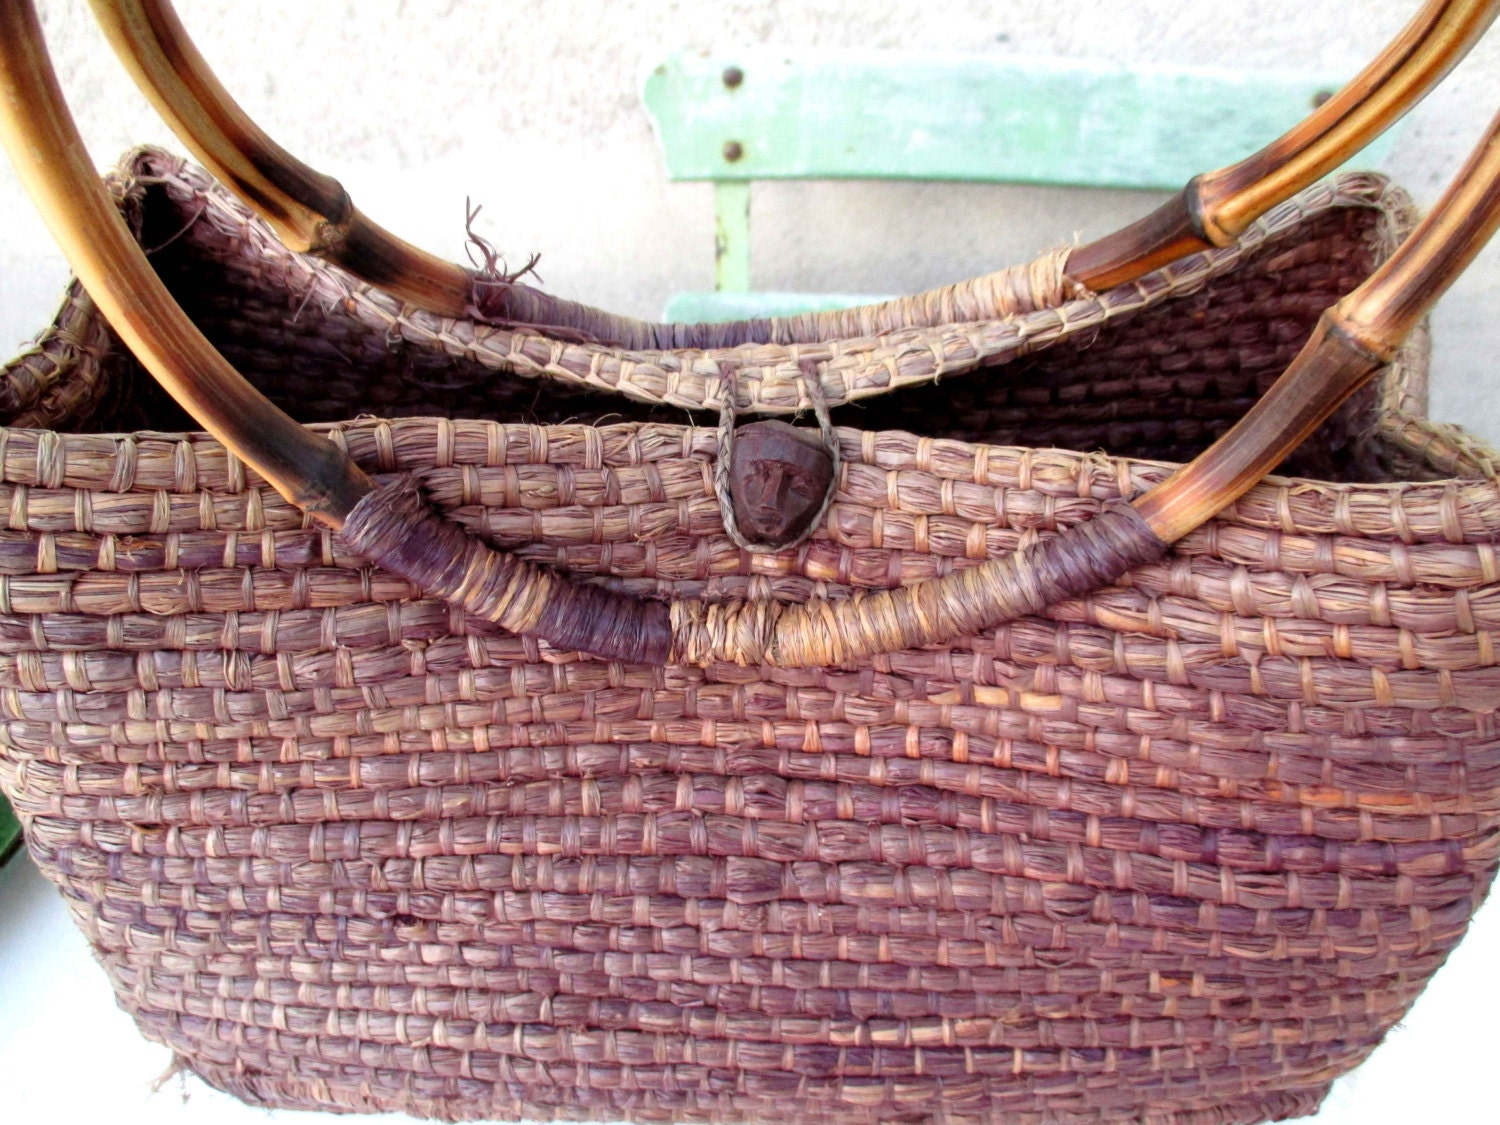 Handmade Straw Basket : Woven handmade african straw basket with carved head